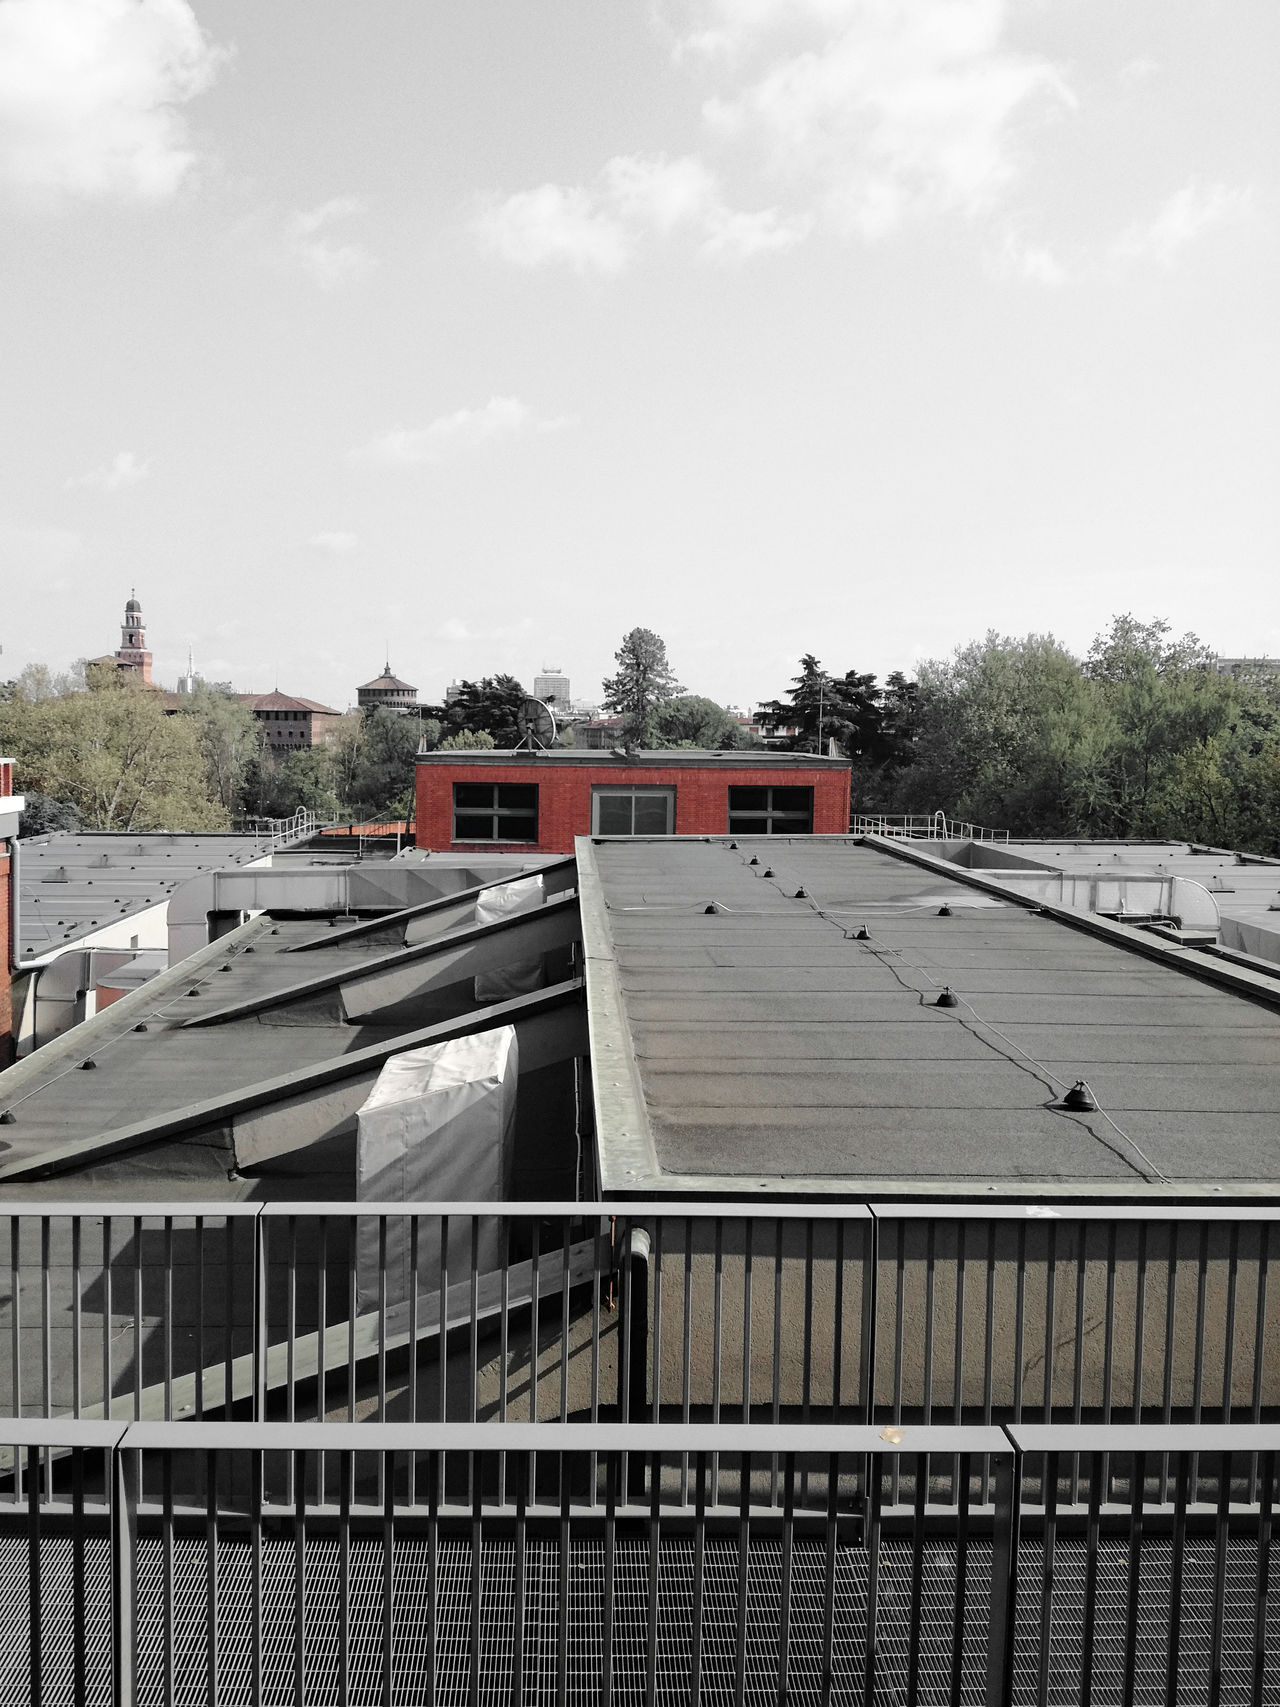 Architecture Building Exterior Built Structure Cloud - Sky Day Milano Design Week 2017 - Ventura Lambrate #salonedelmobile #milanodesignweek #design #milano #milan #venturalambrate #venturadesigndistrict #venturadesign #venturadesignco Ilsalone Ilsalonedelmobile Nature No People Outdoors Roof Rooftop Sky Tree Triennale